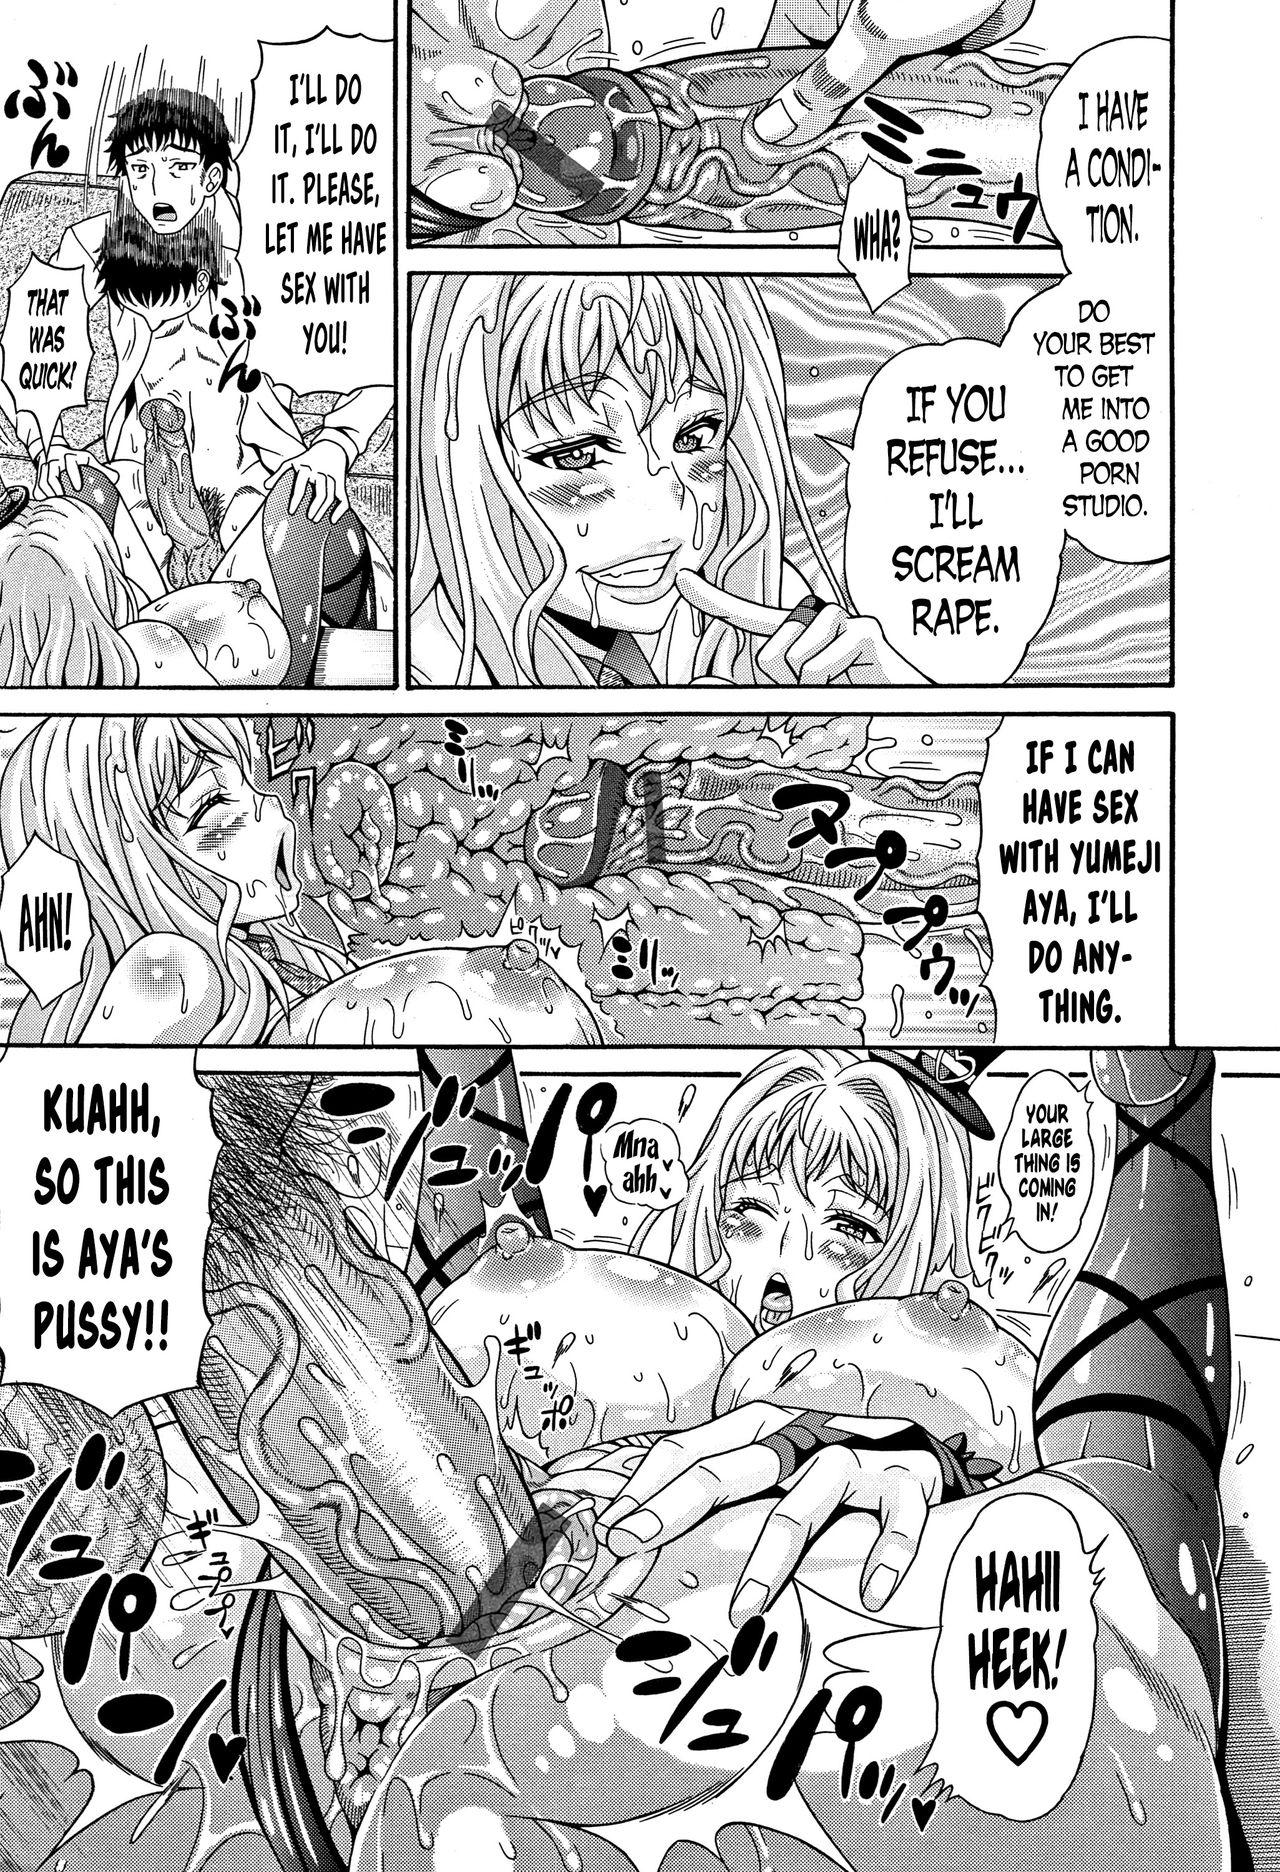 [Andou Hiroyuki] Mamire Chichi - Sticky Tits Feel Hot All Over. Ch.1-7 [English] [doujin-moe.us] 15